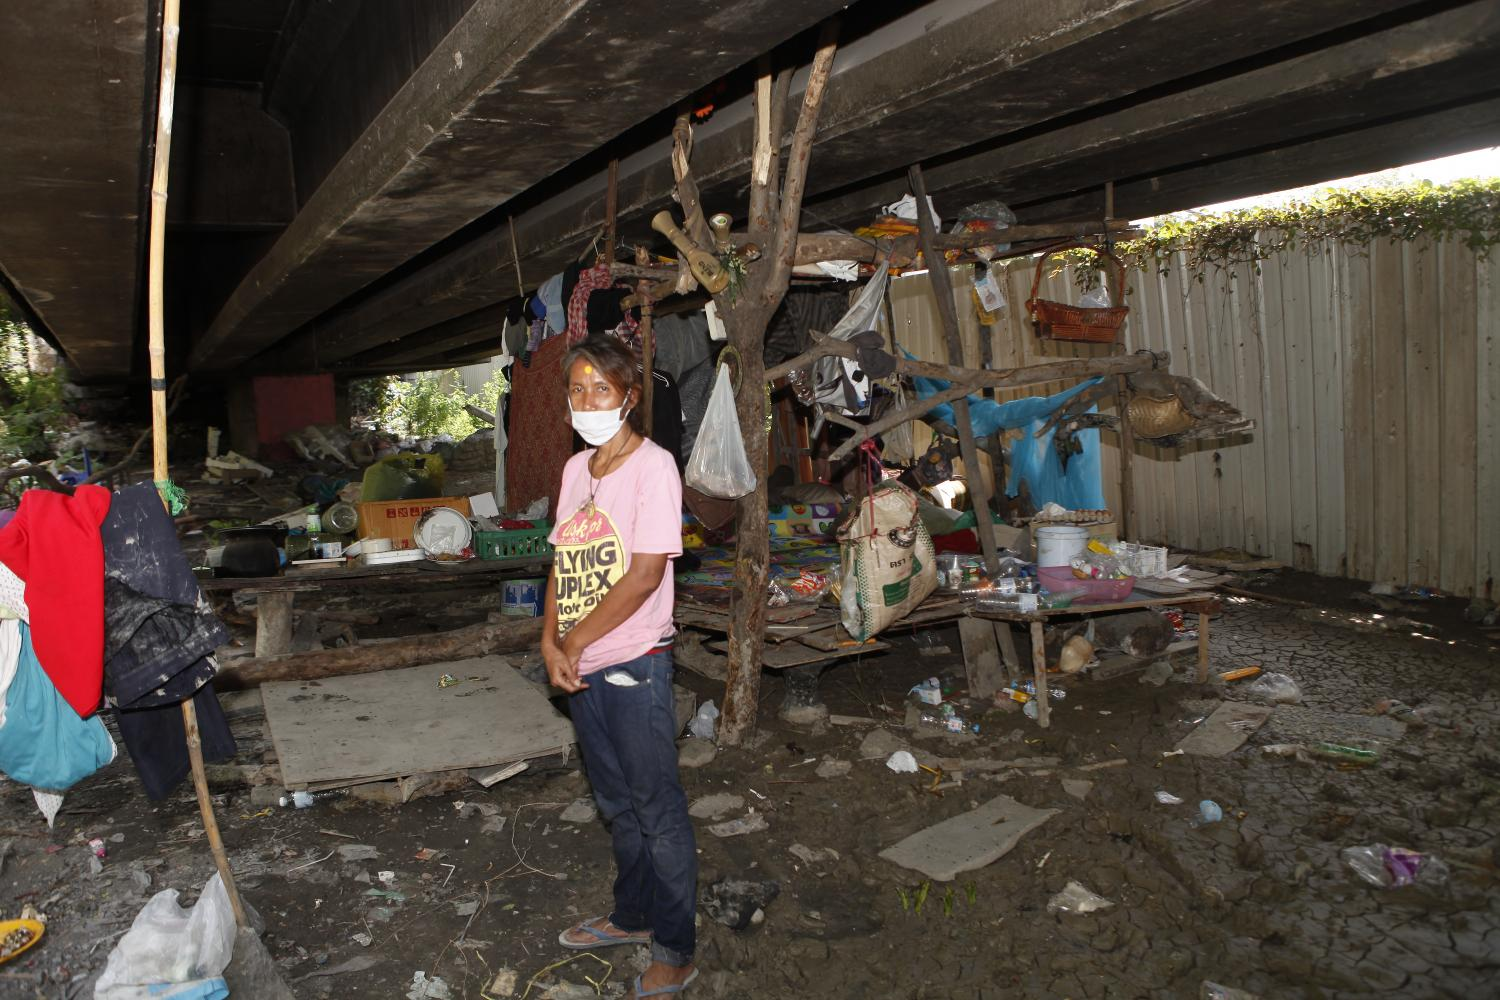 Orathai Srisawas, a deaf woman who lives in a community underneath the Rama IX expressway, stands in front of her shelter. photos by Nutthawat Wichieanbut